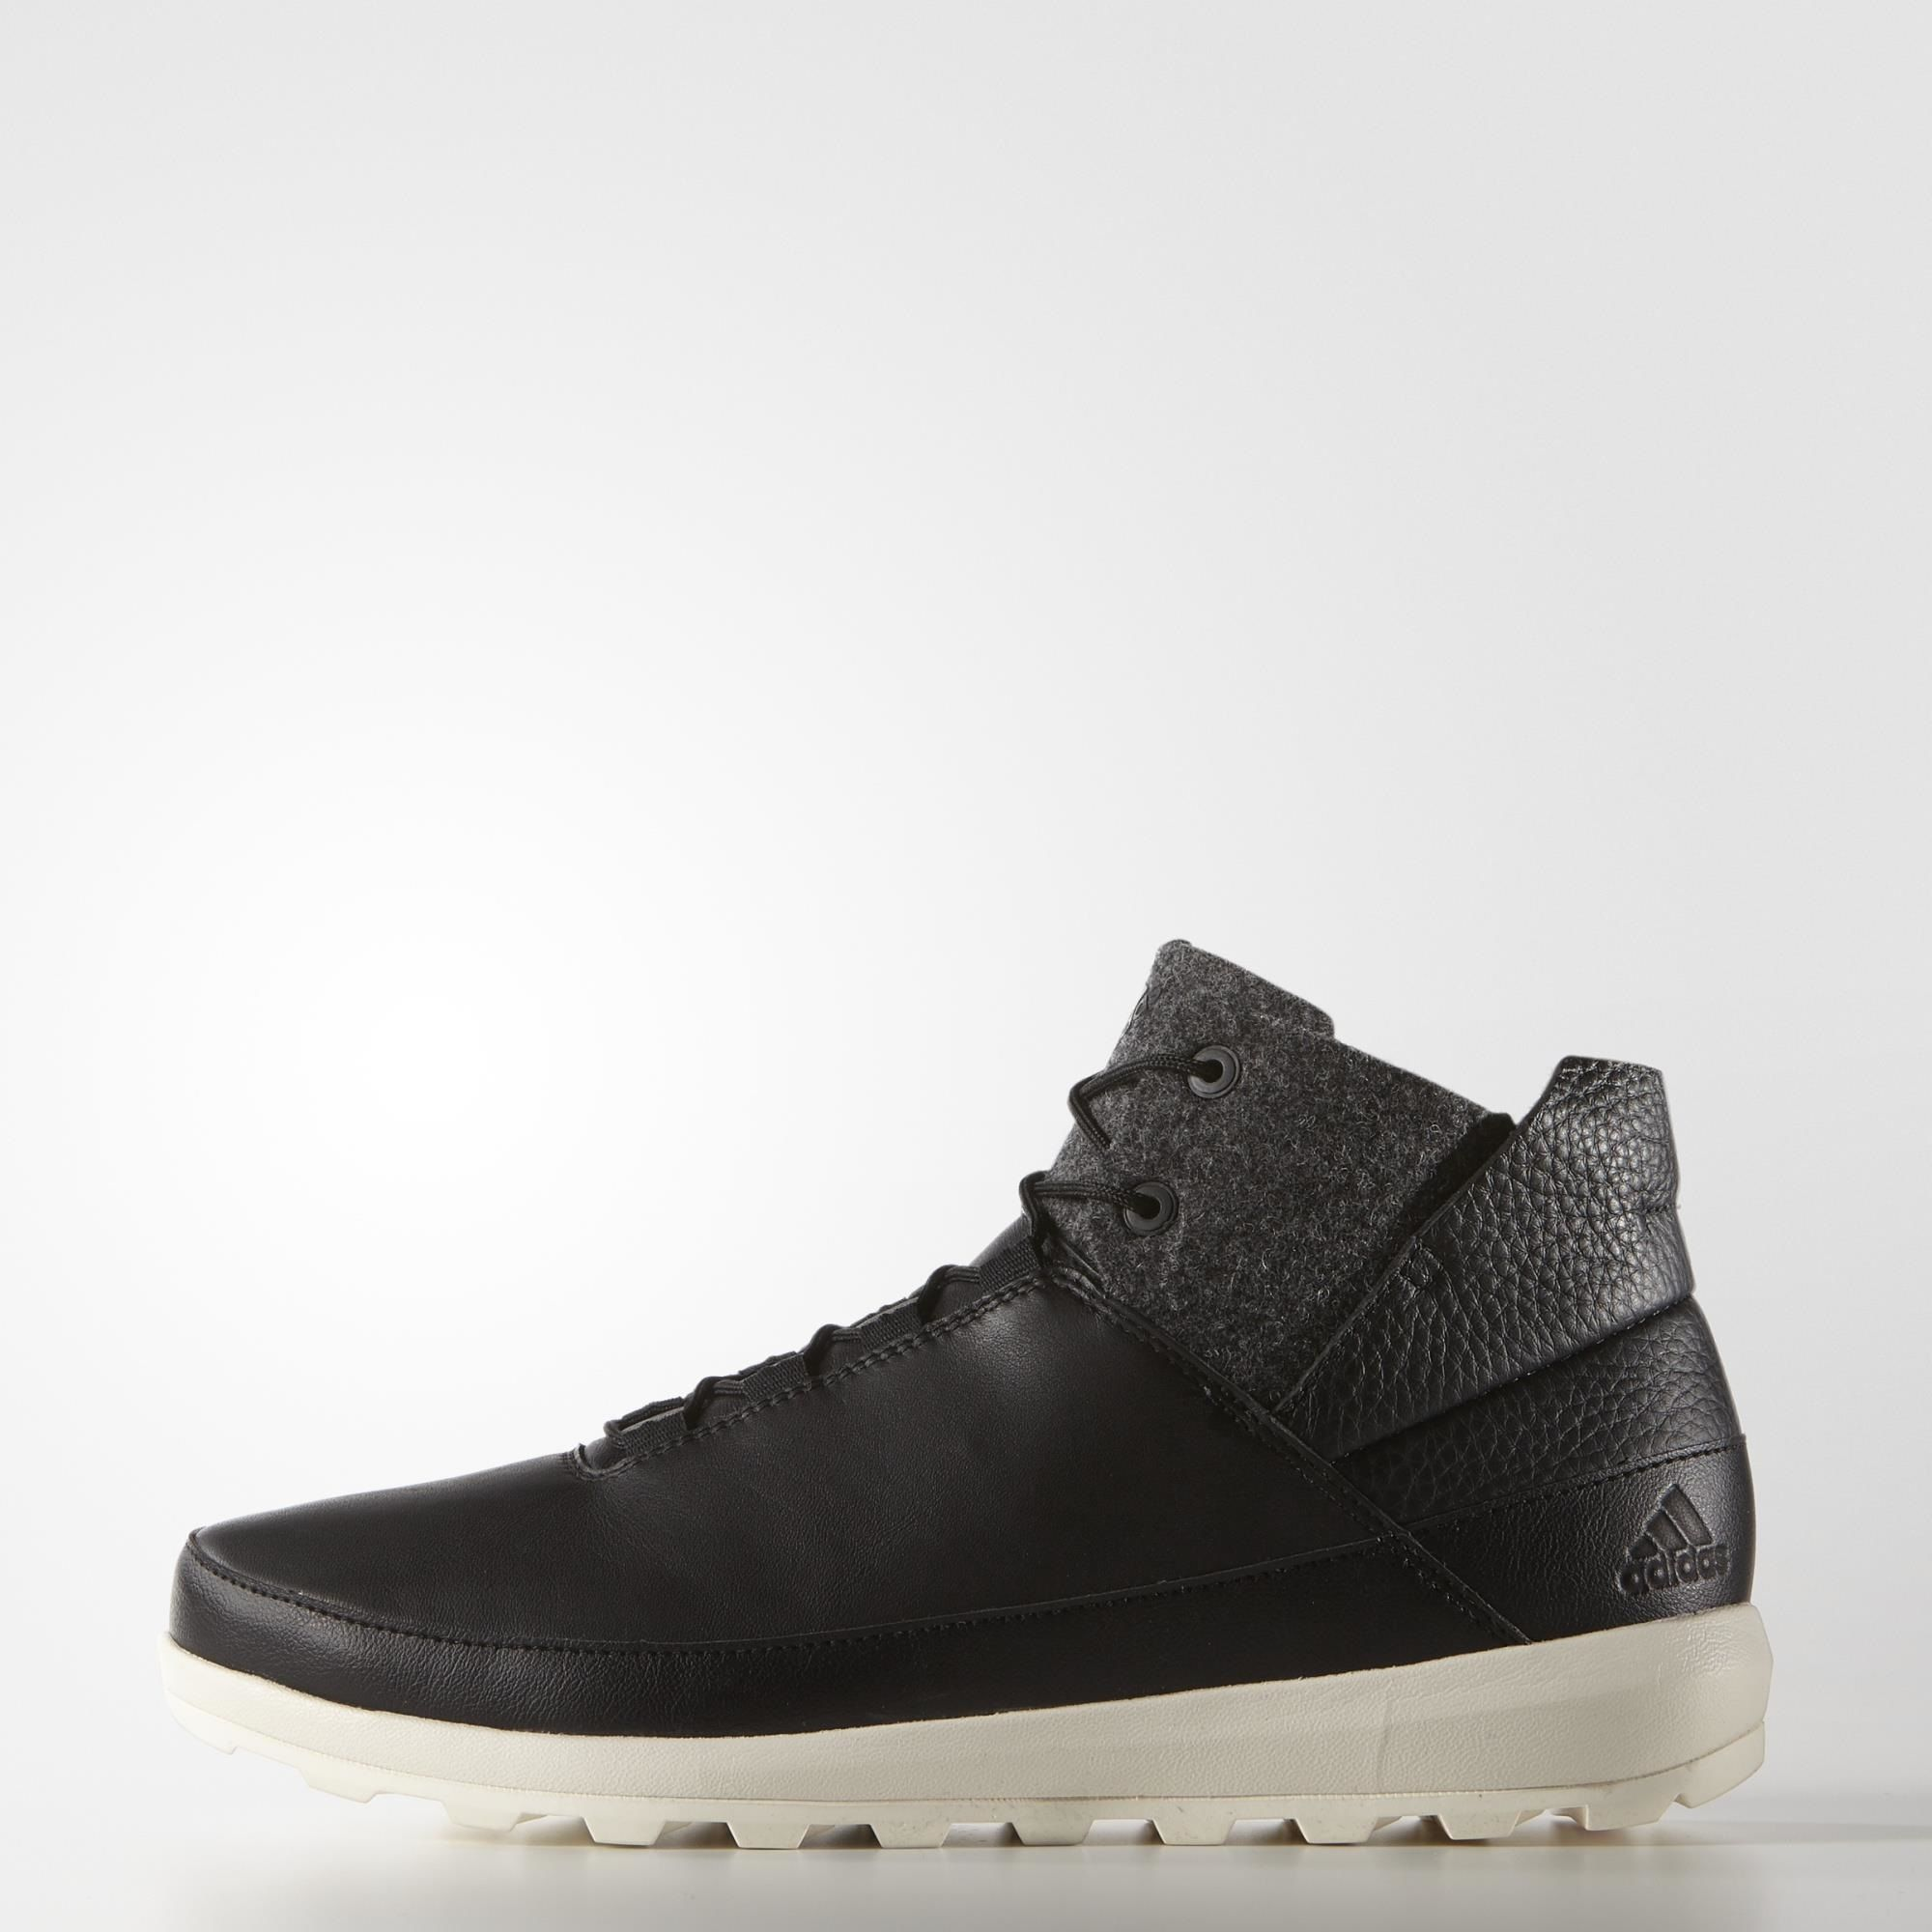 adidas Climawarm Zappan II Winter Mid Shoes - Black | adidas UK